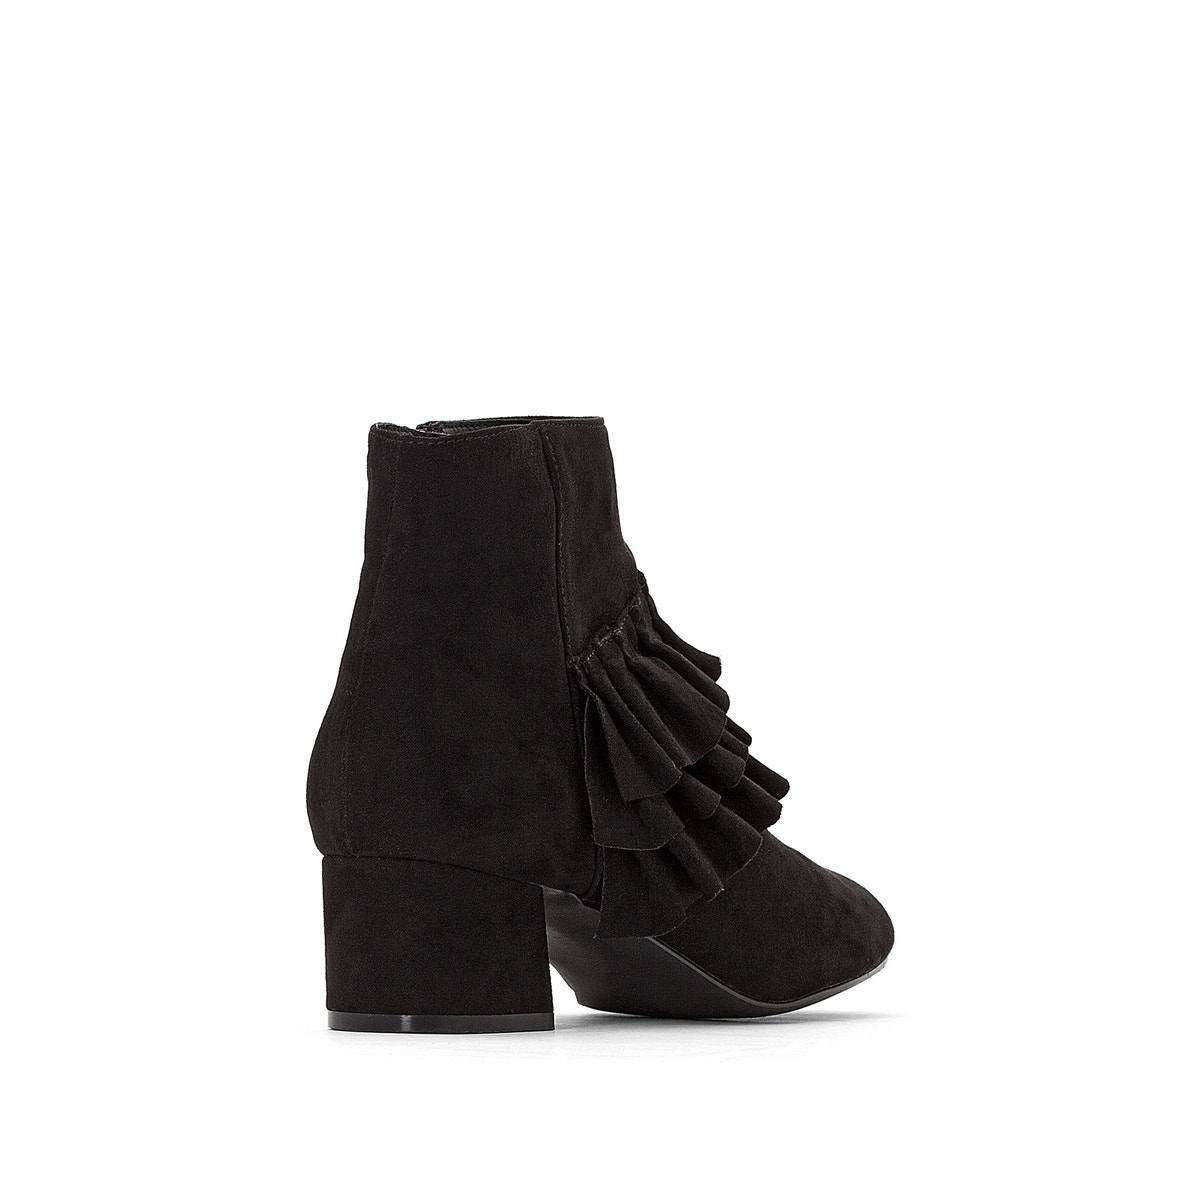 La ROToute ROToute ROToute Collections Damenschuhe Fringed Ankle Stiefel eacdd1